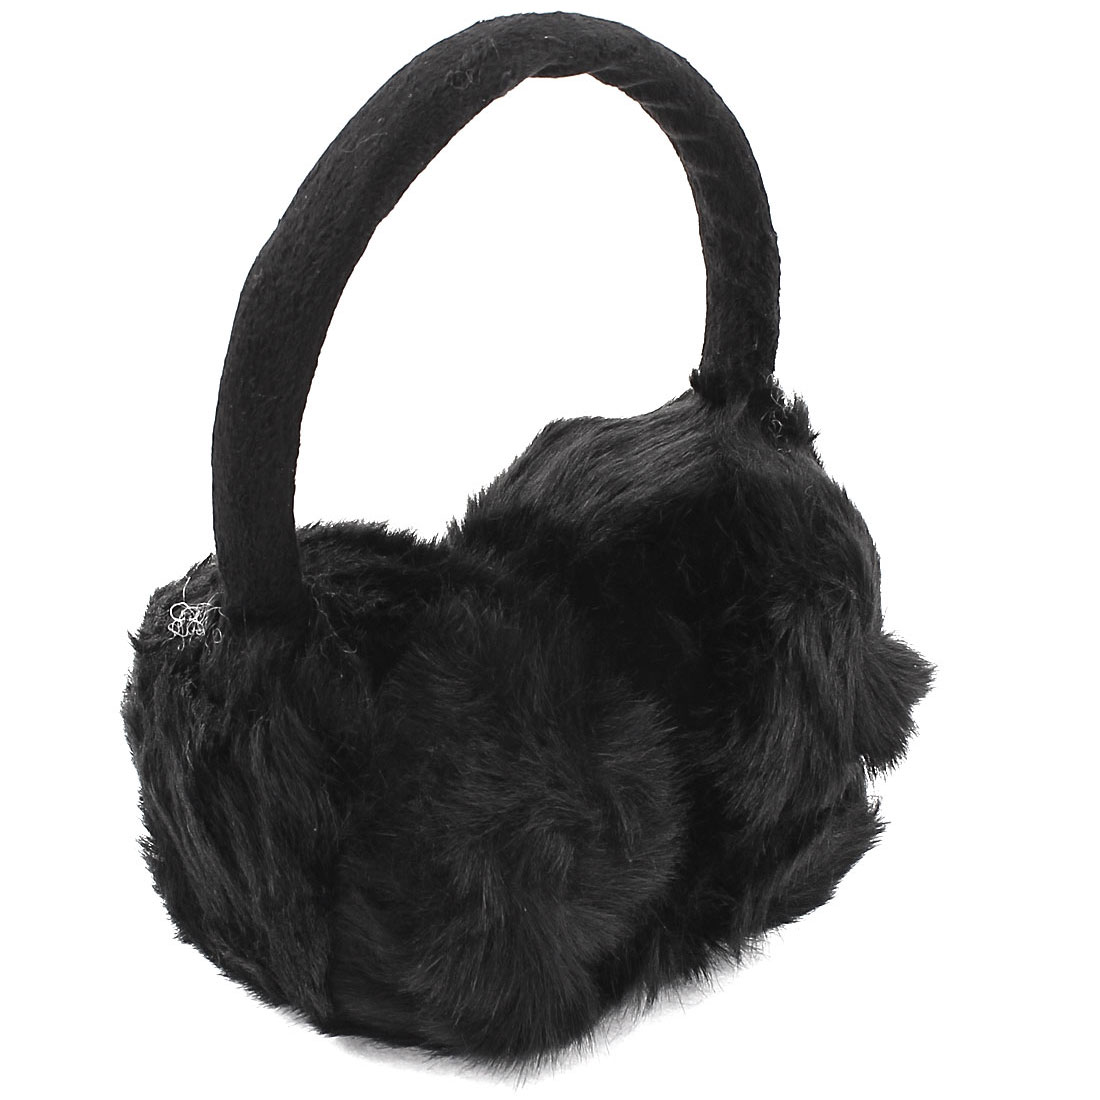 Woman Lady Winter Soft Plush Earmuffs Ear Warmers Earlap Headband Black